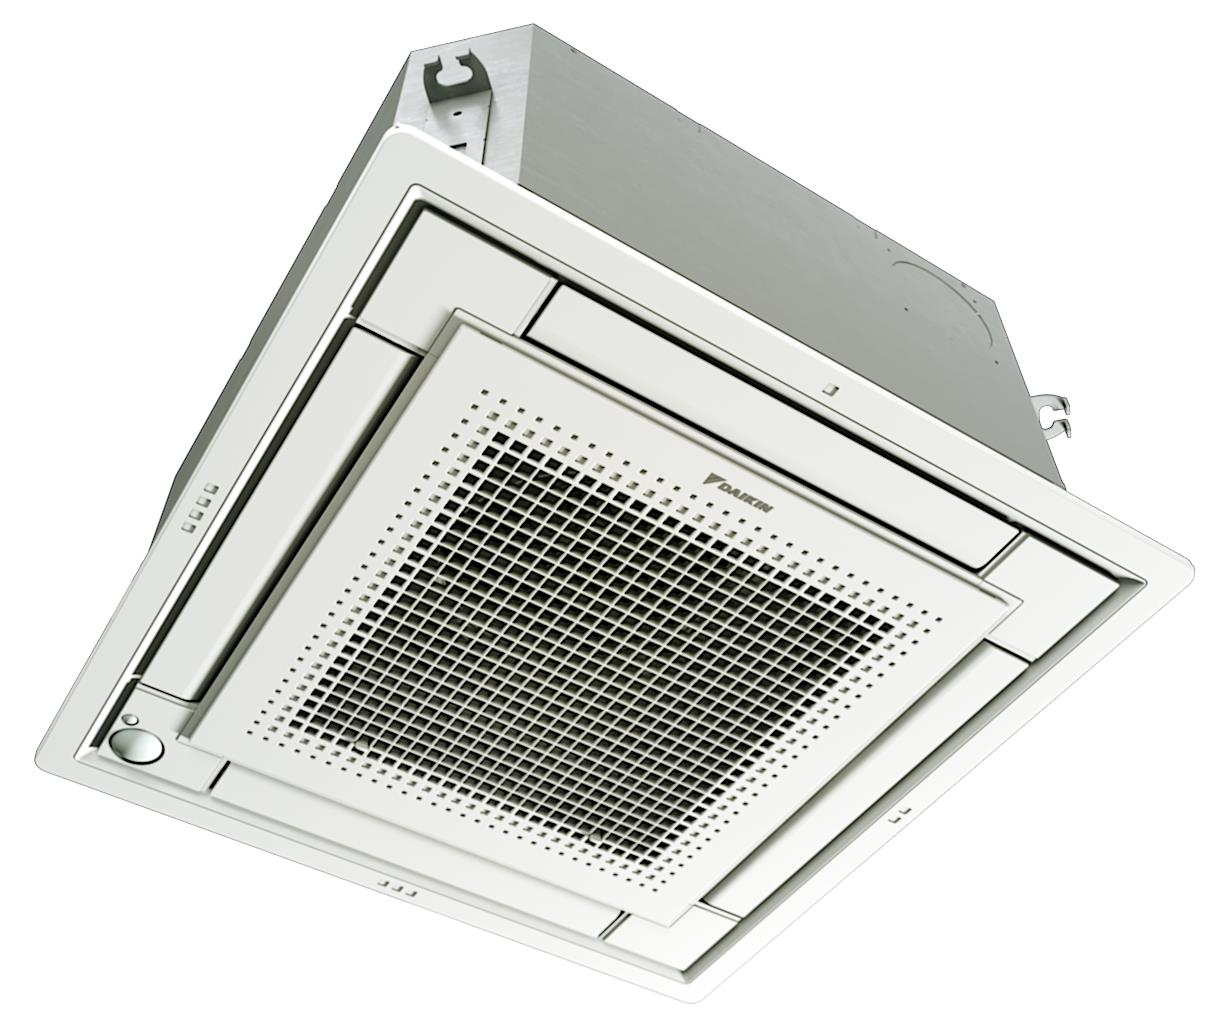 Airvent Airconditioning & Ventilation: Indoor Air Conditioning Options